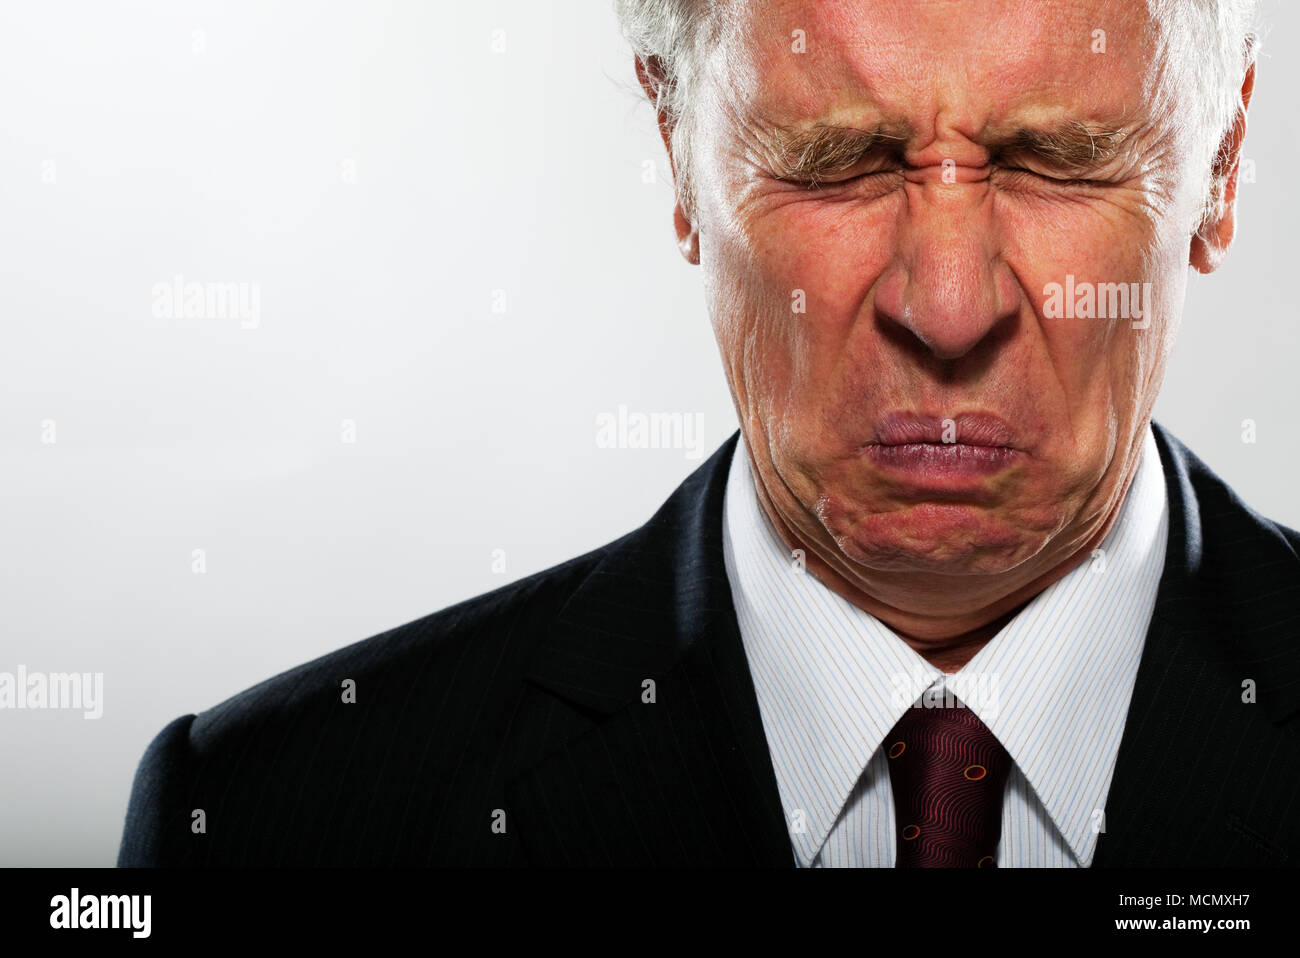 Middle aged man with sour expression - Stock Image